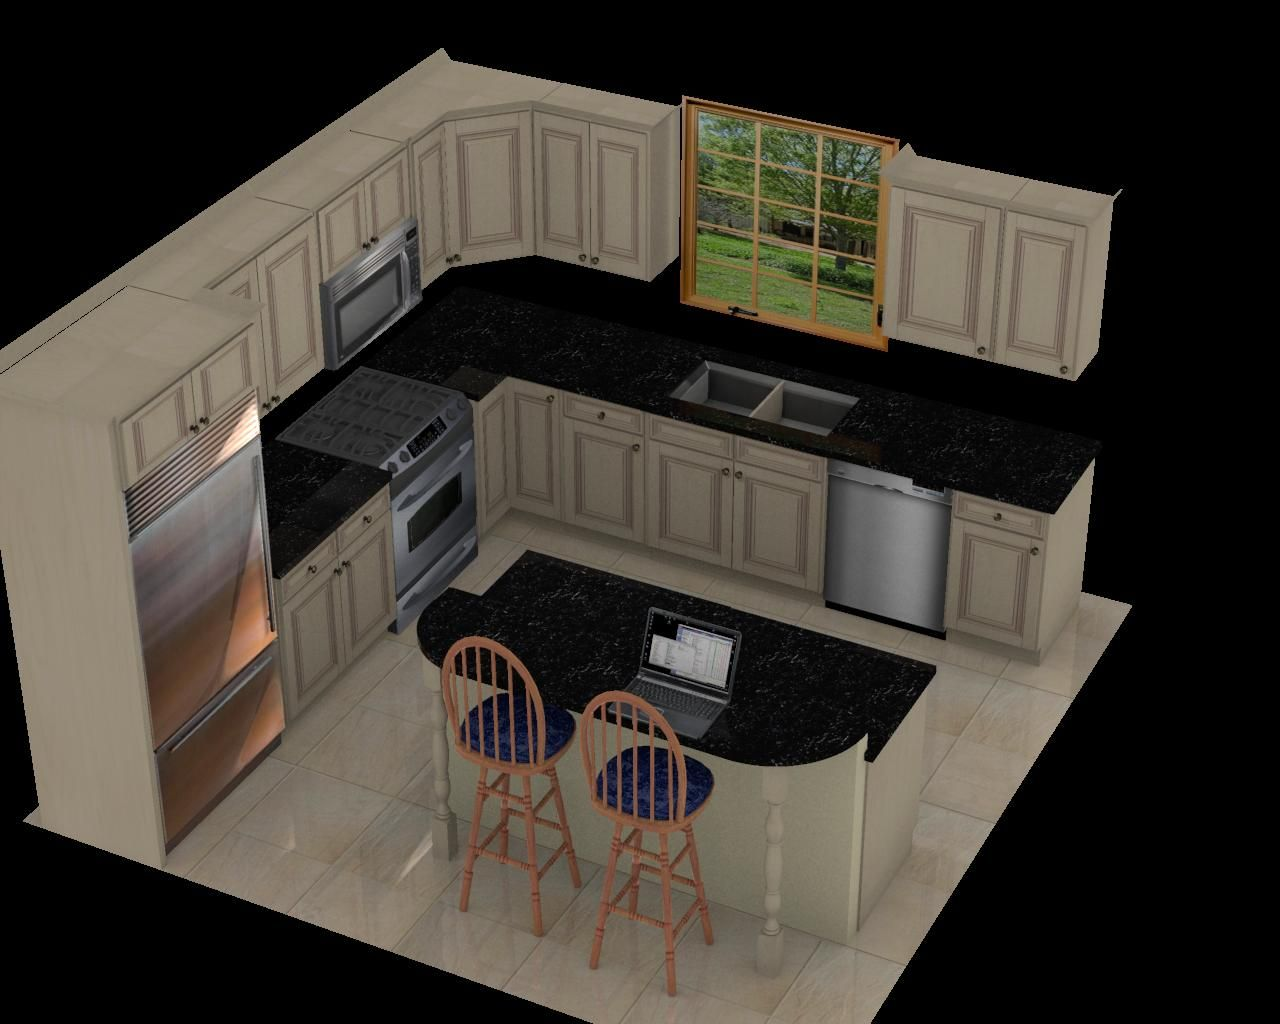 Luxury 12x12 Kitchen Layout With Island 51 For With 12x12 Kitchen Layout With Island Kitchen